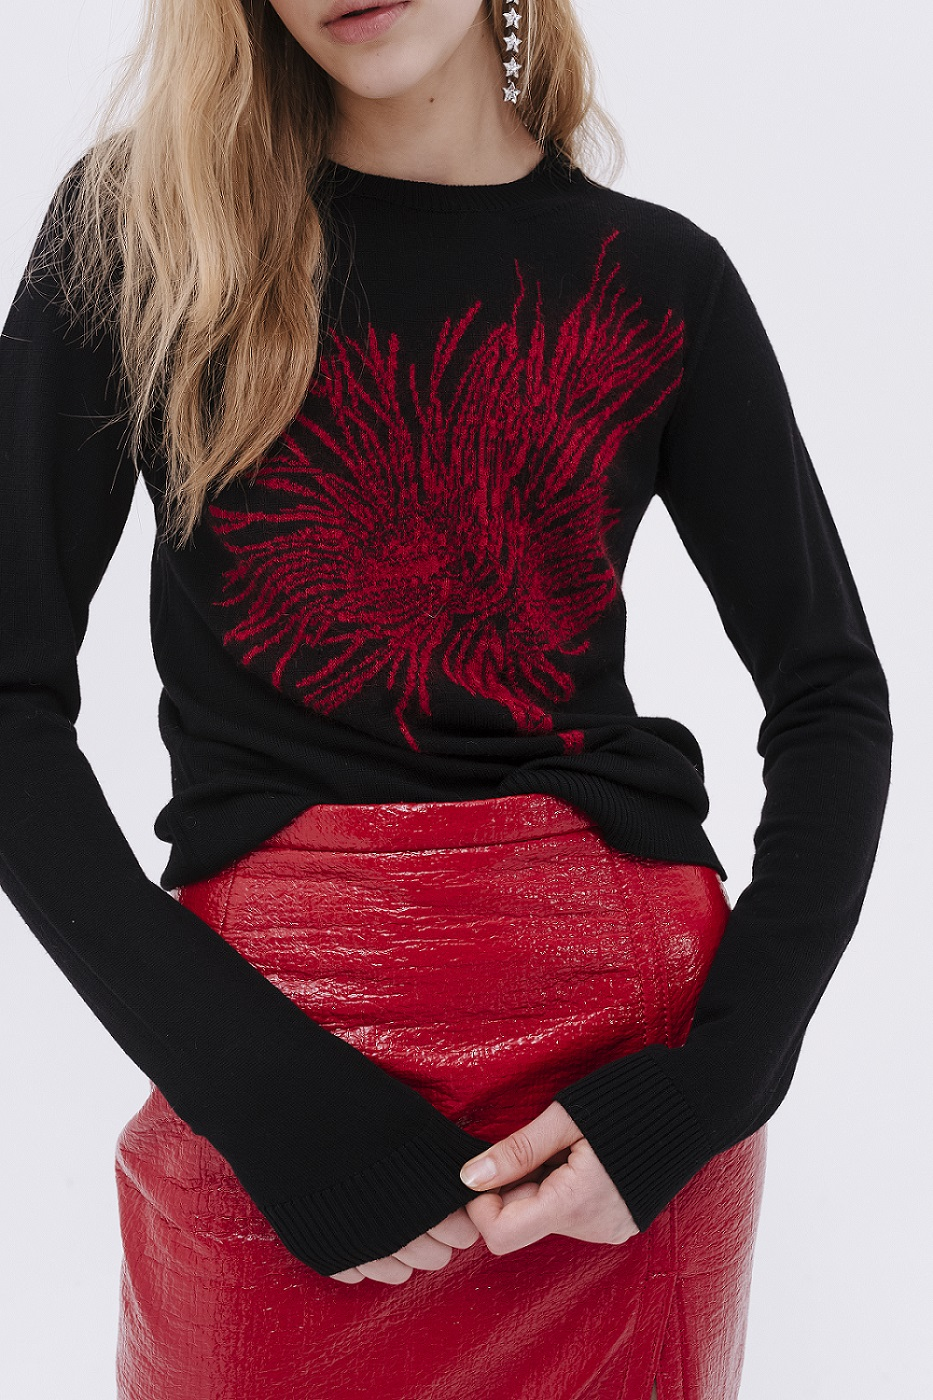 red and black tripe top with N21 logo and black outwear